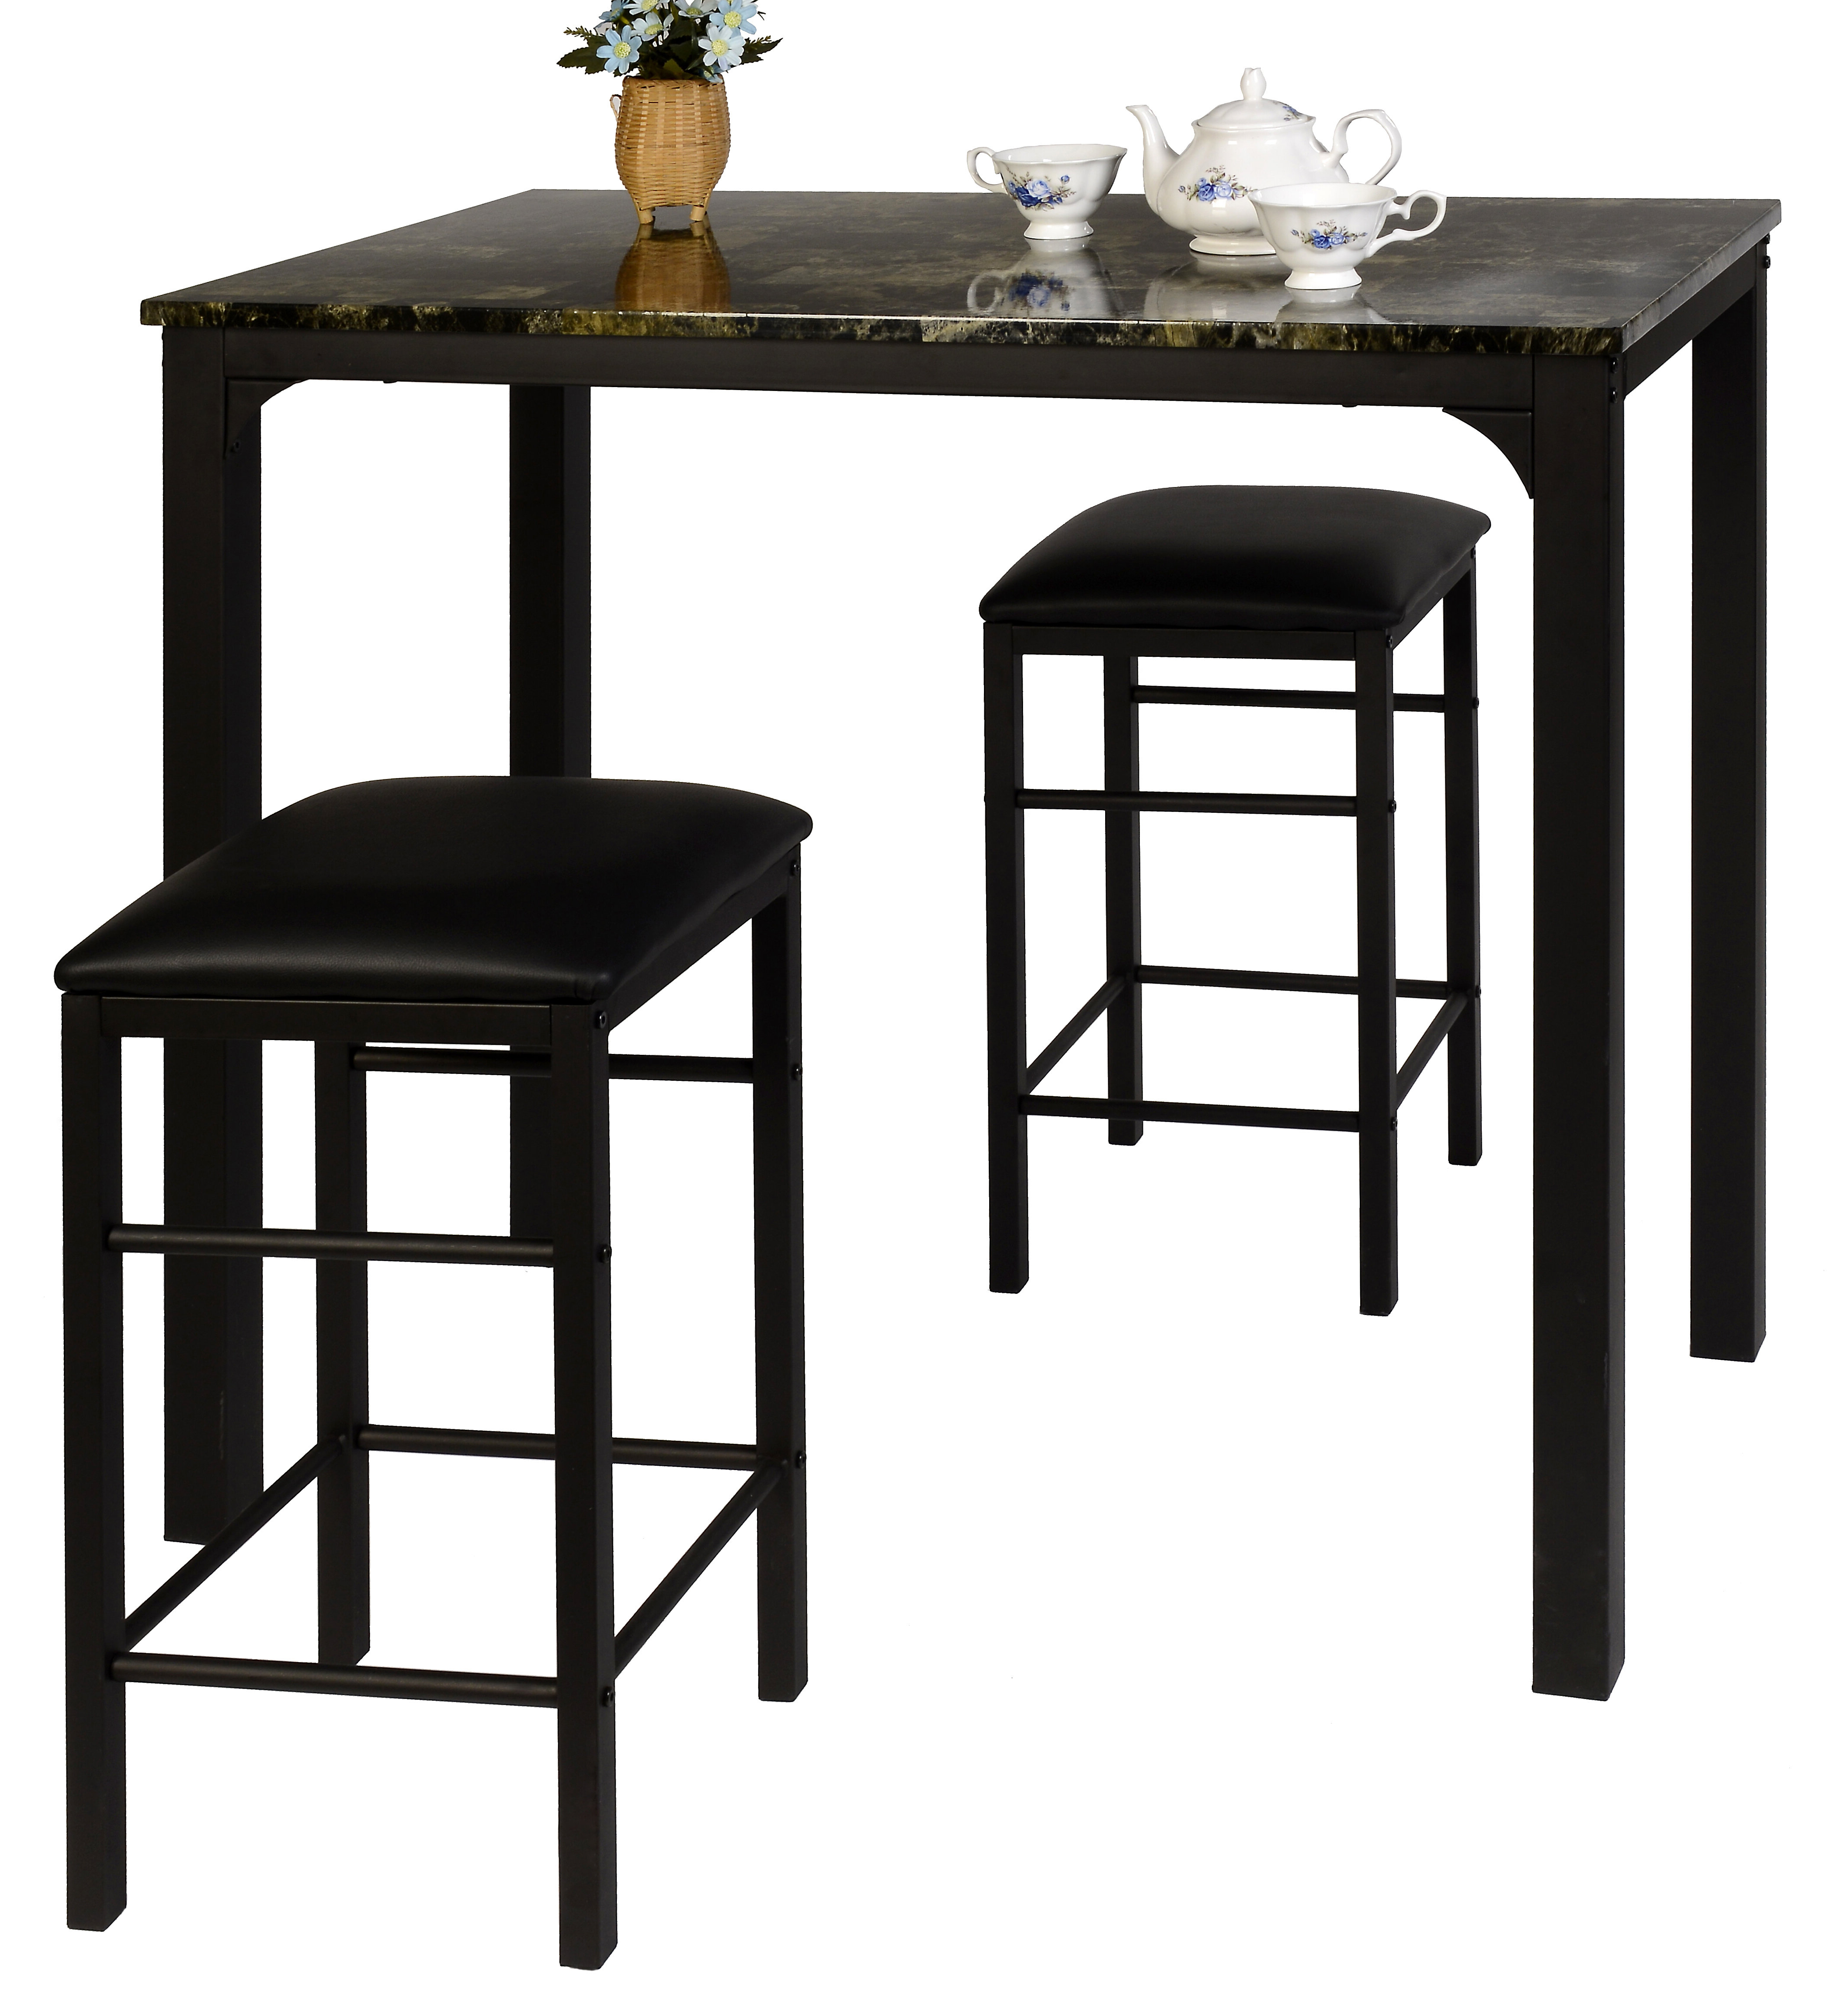 Newest Miskell 3 Piece Dining Sets Inside Ebern Designs Lillard 3 Piece Breakfast Nook Dining Set (View 16 of 25)